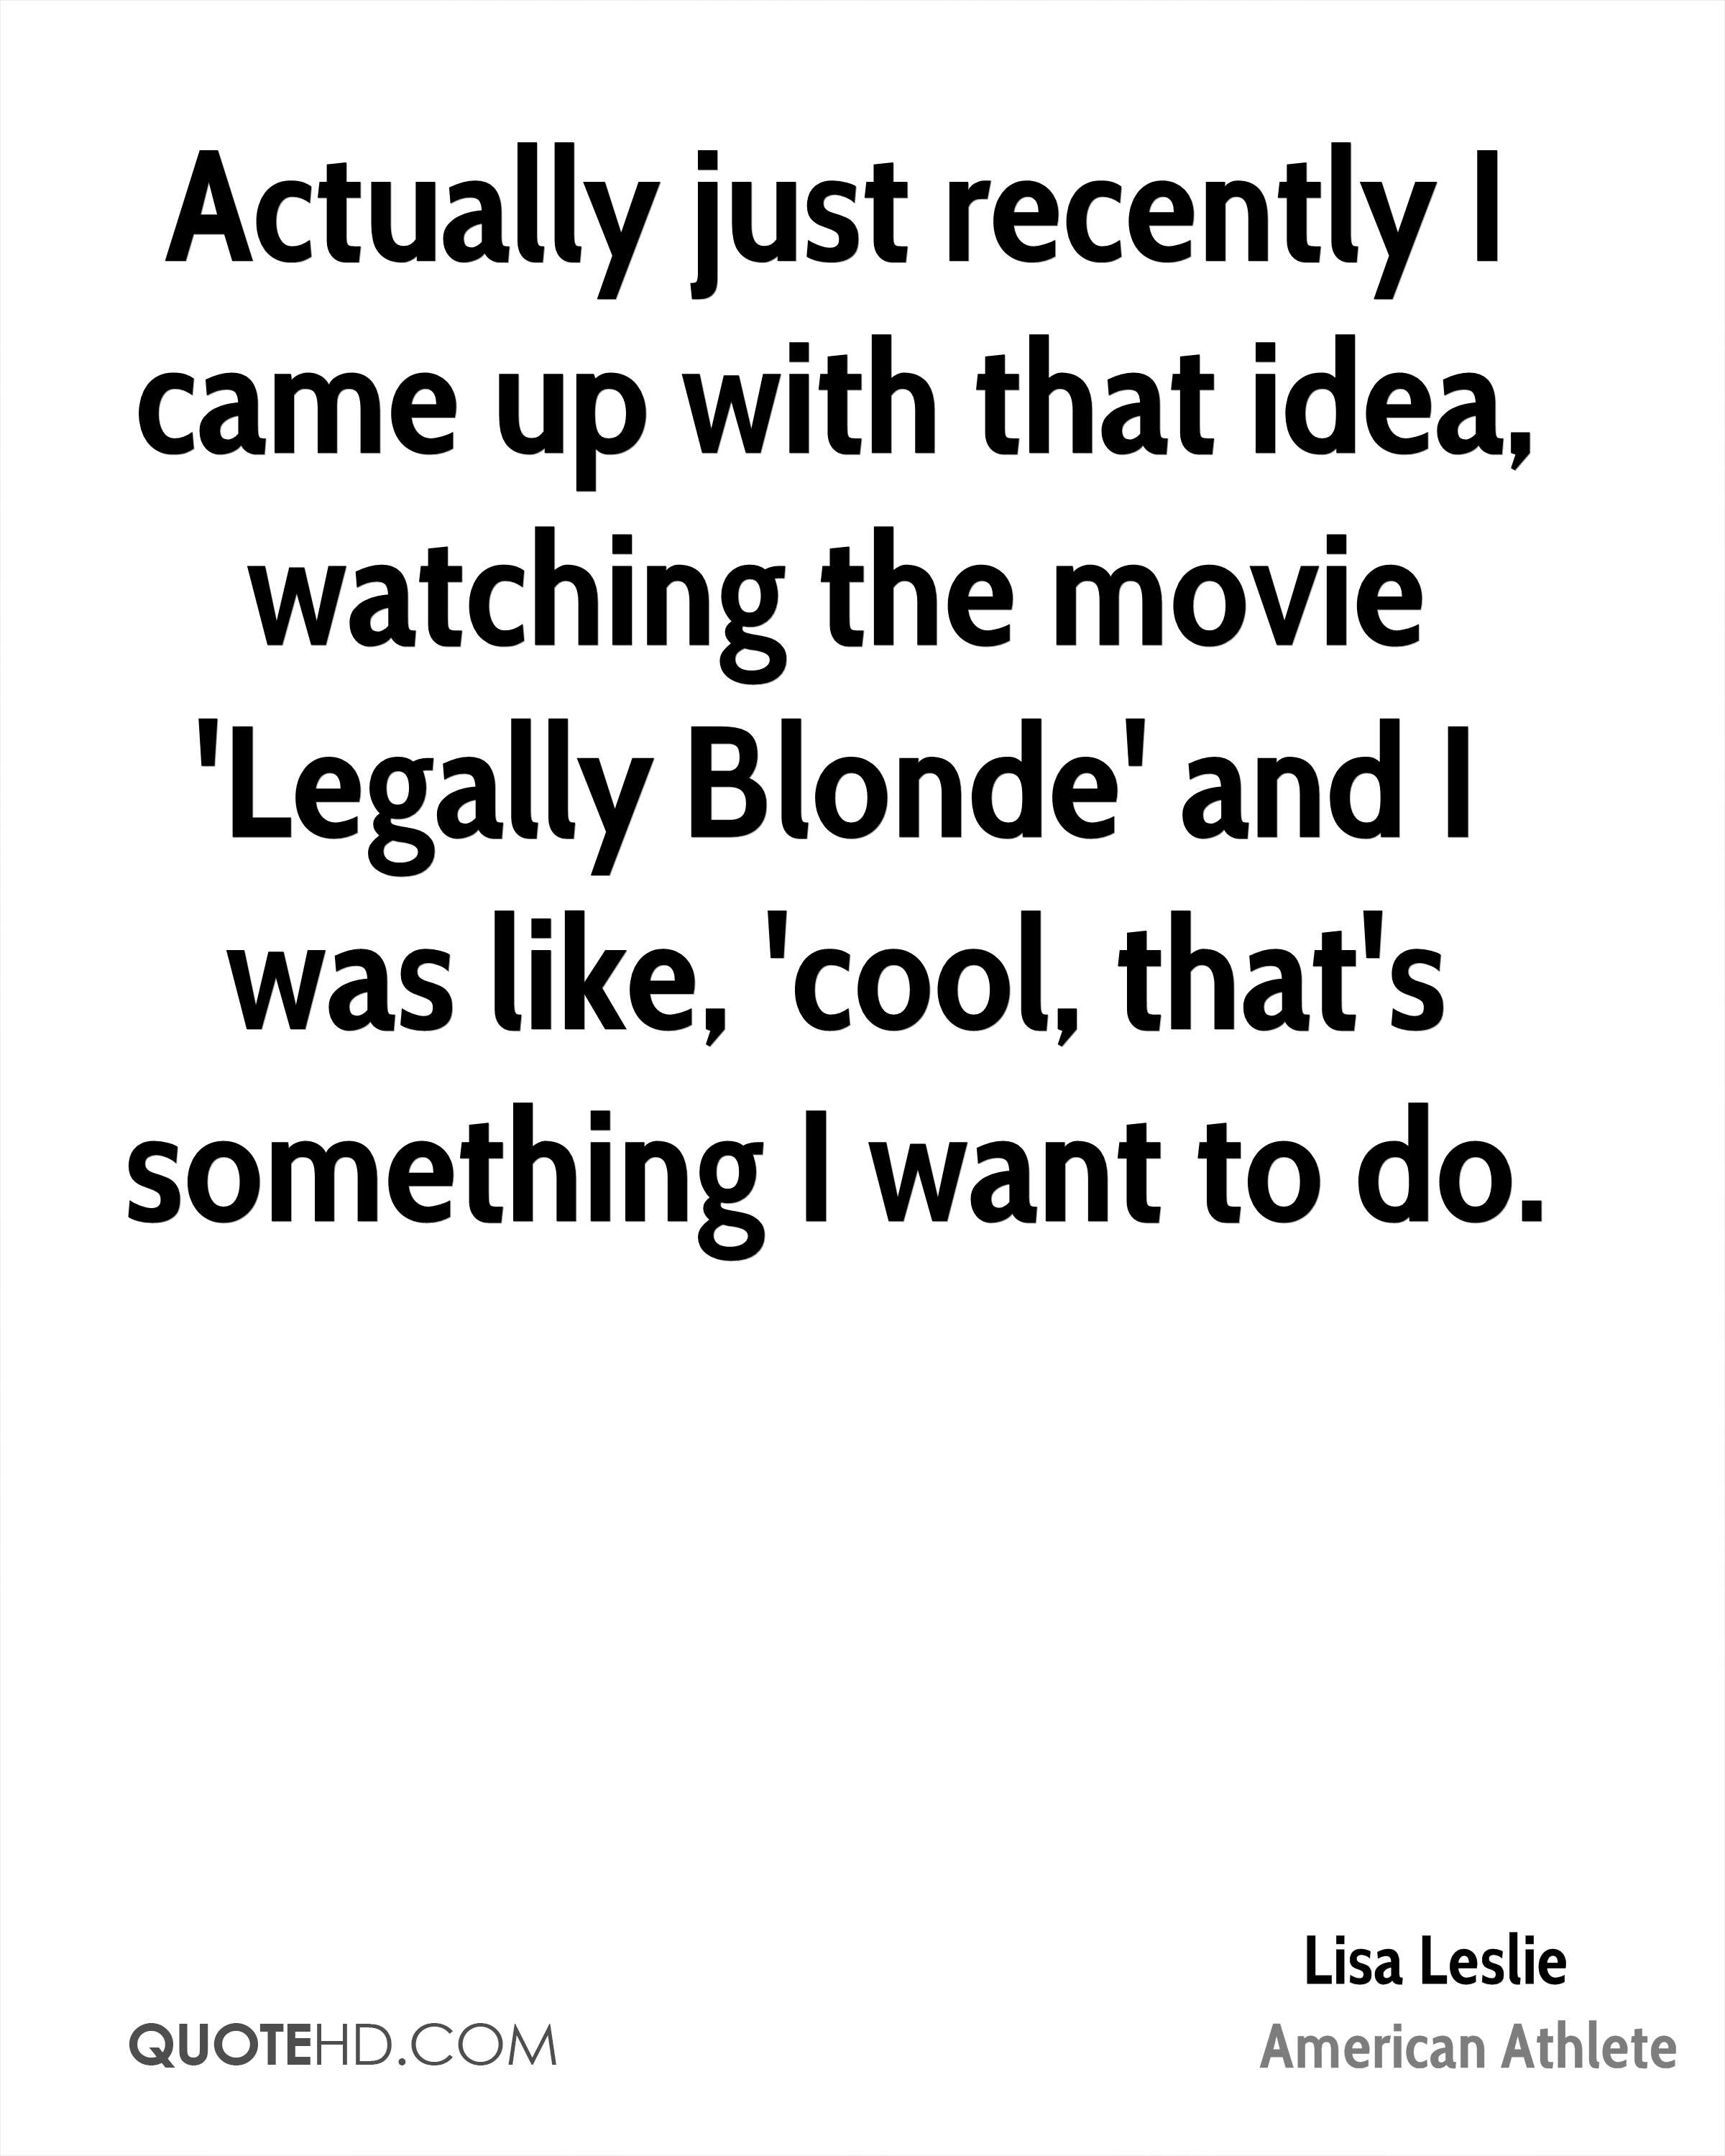 Actually just recently I came up with that idea, watching the movie 'Legally Blonde' and I was like, 'cool, that's something I want to do.